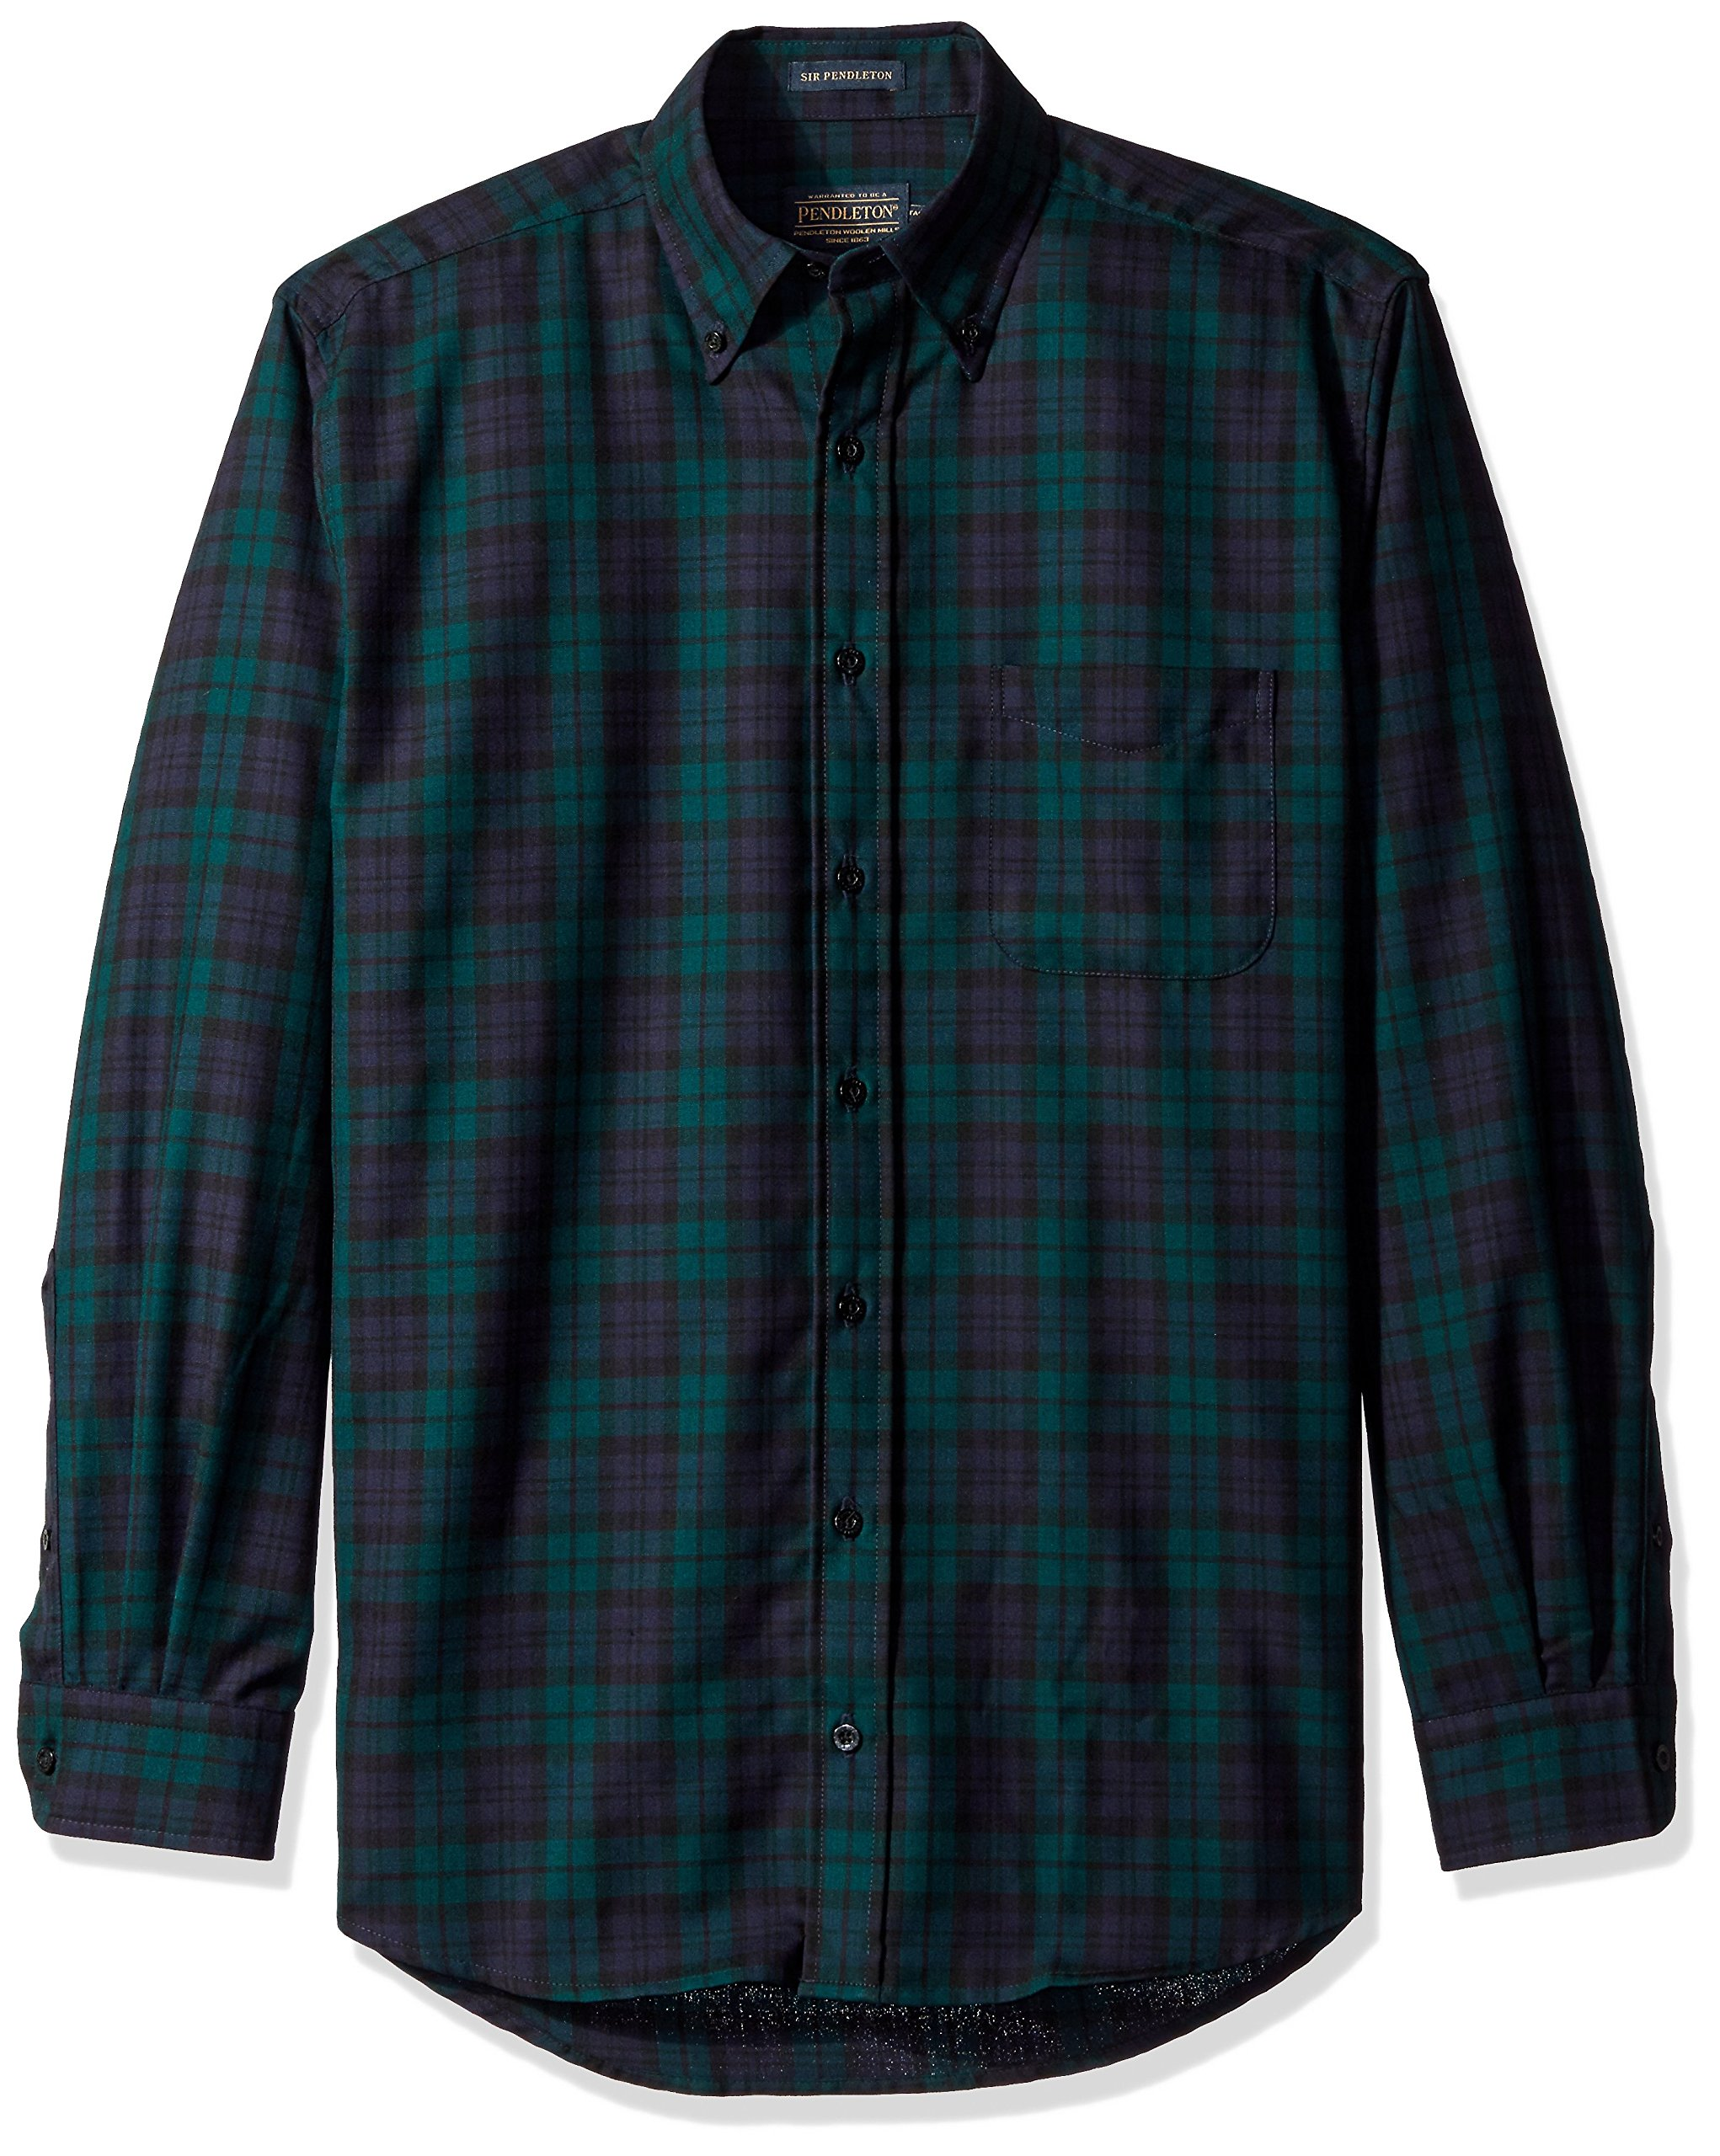 Pendleton Men's Big & Tall Long Sleeve Button Front Sir Pen Shirt, Black Watch Tartan, X-Large/Tall